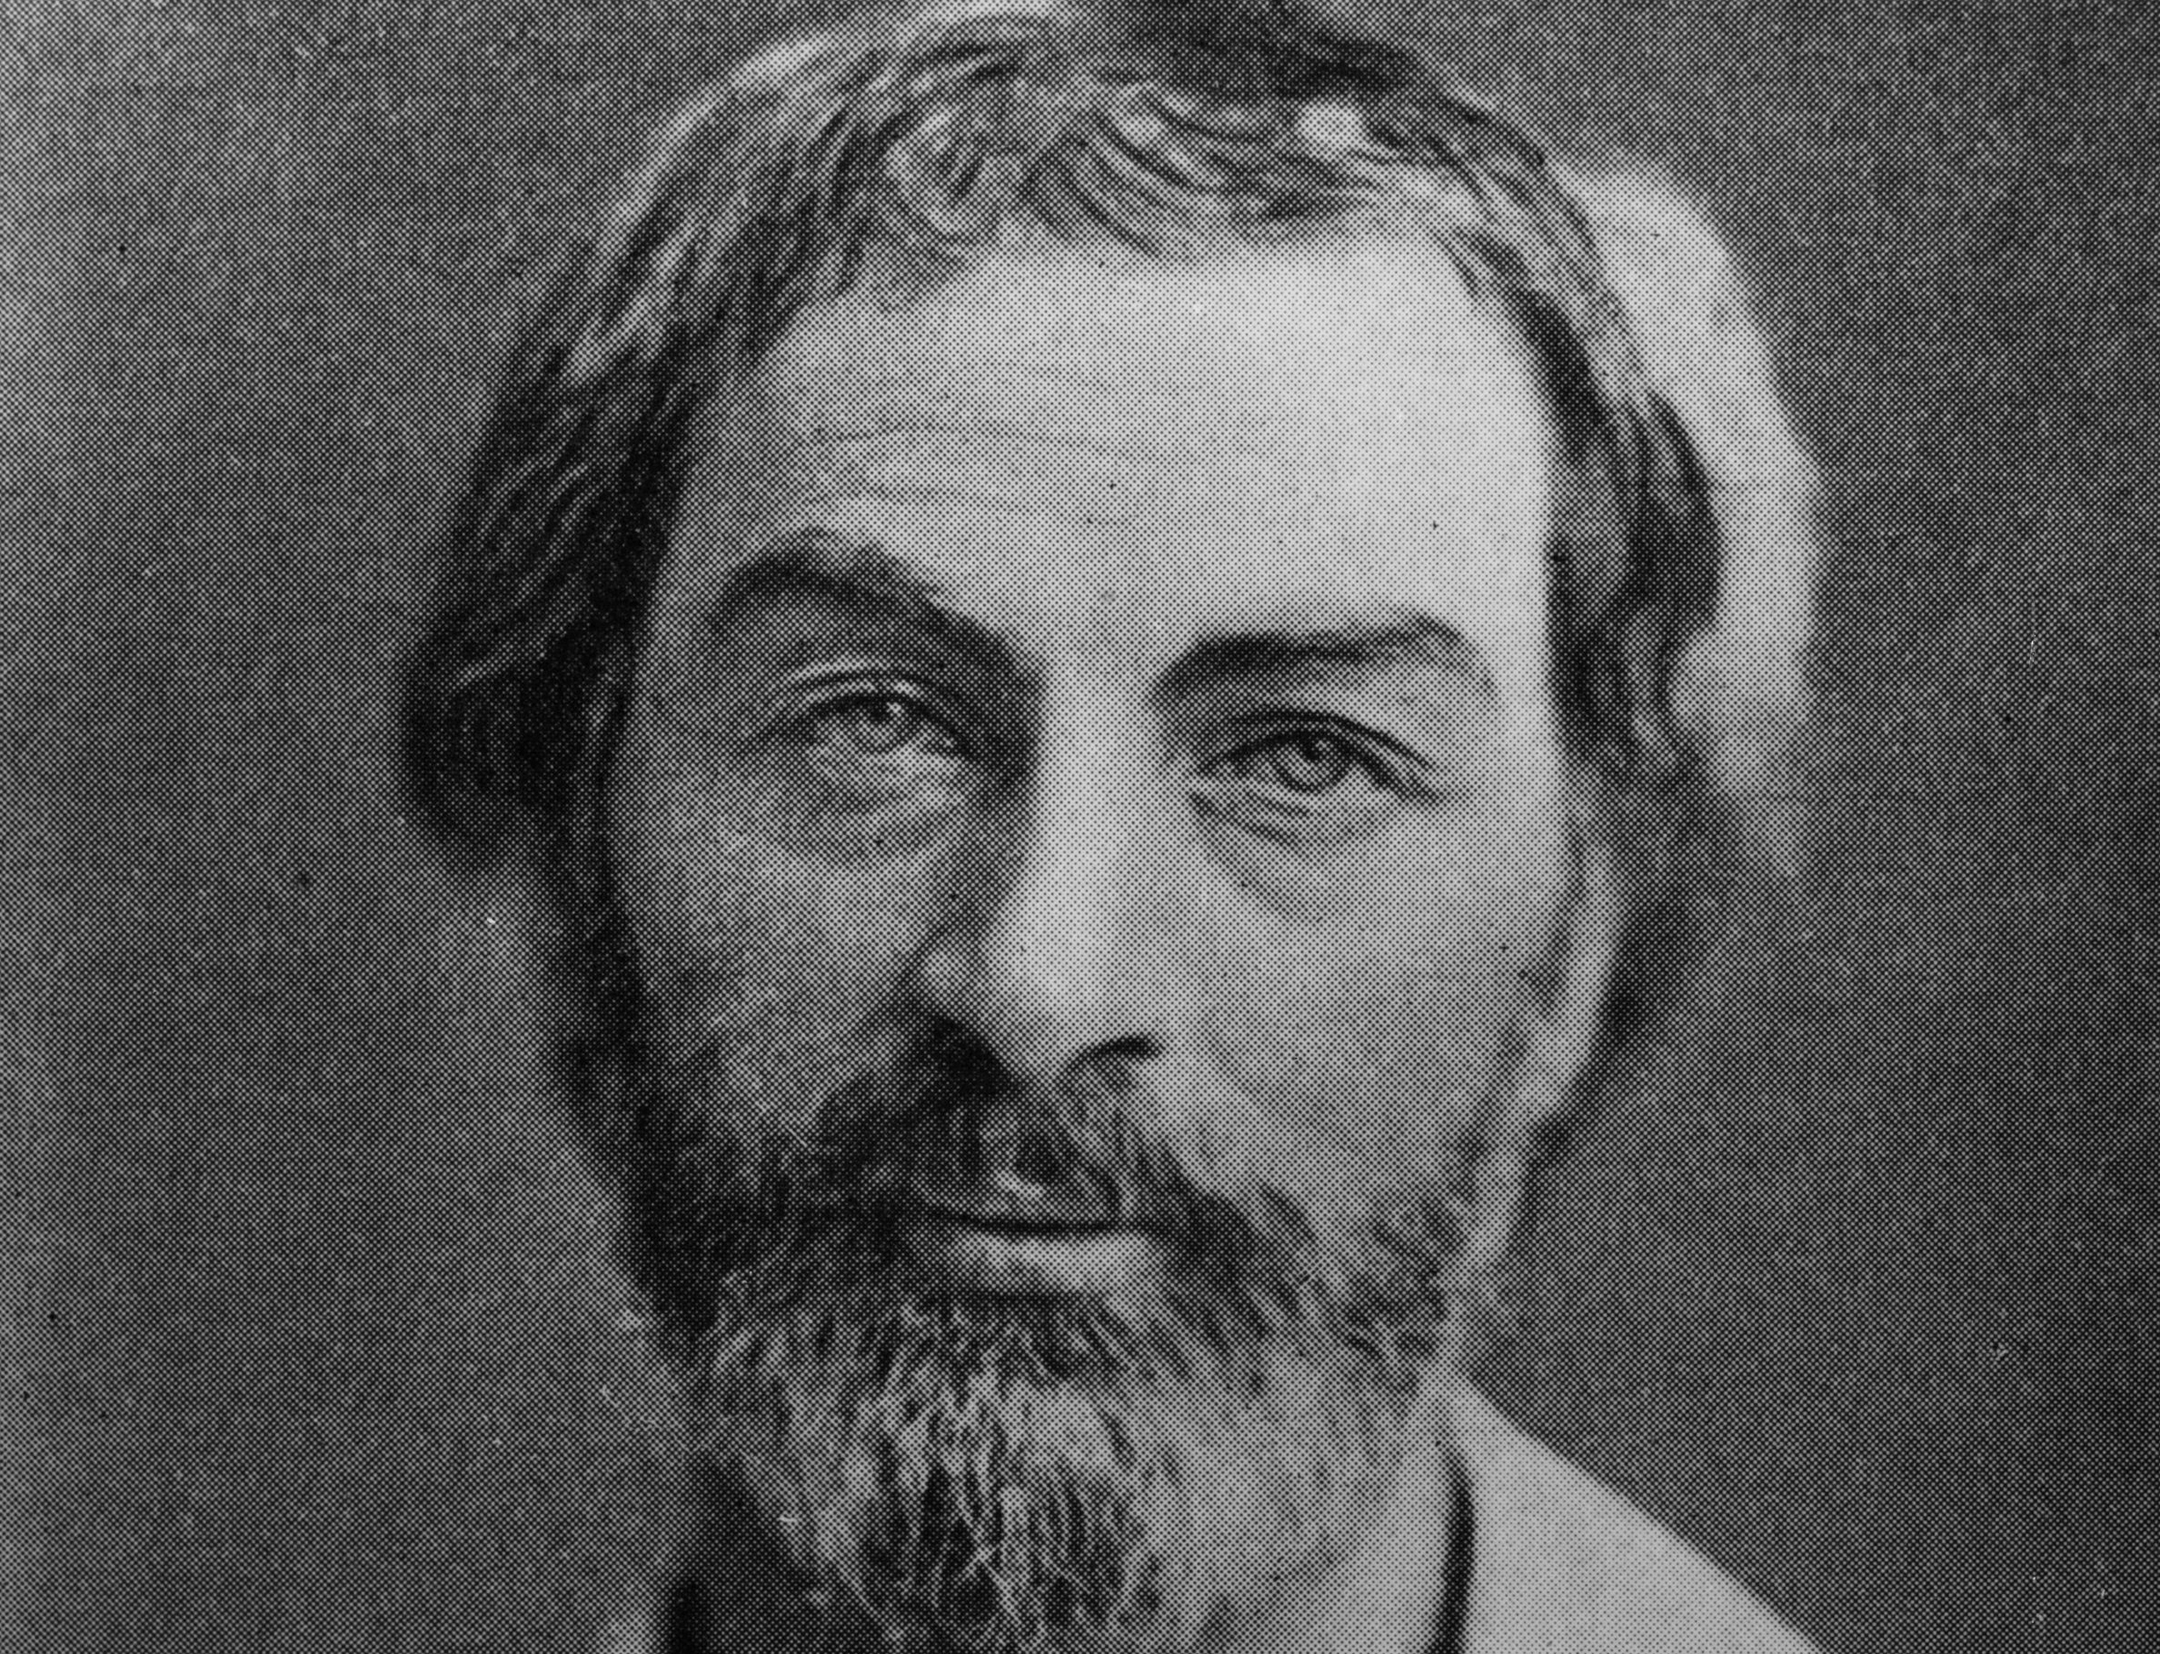 black and white portrait of a young walt whitman